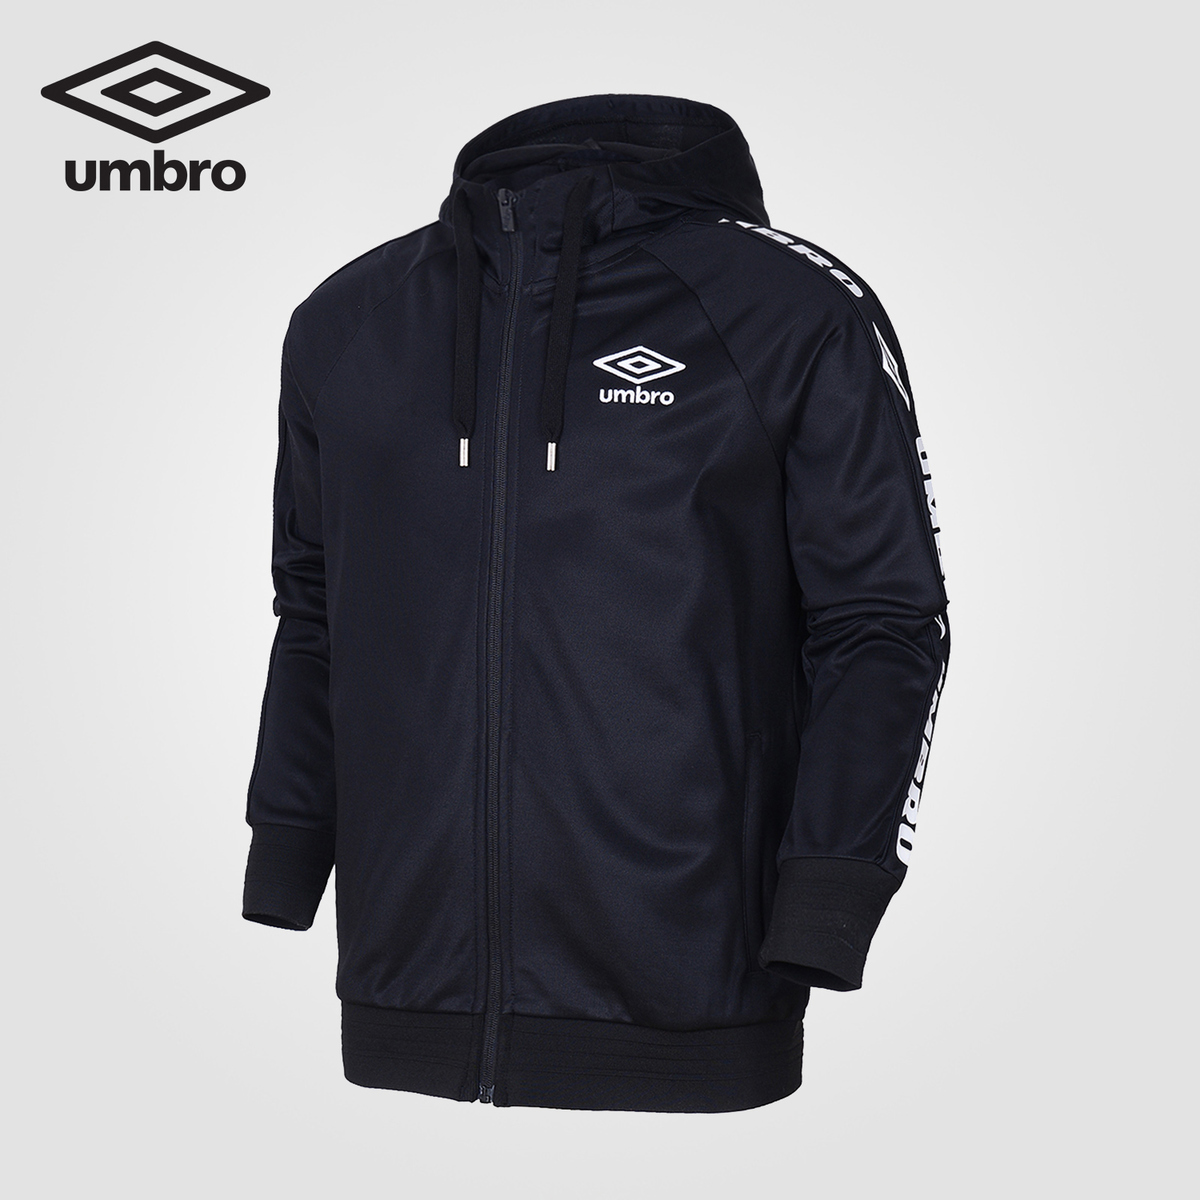 Umbro 2018 Sports Hooded Cardigan Jacket Running Jacket Outdoor Sport Mens Jacket Waterproof Windproof Sportwear UI183AP2405 цена